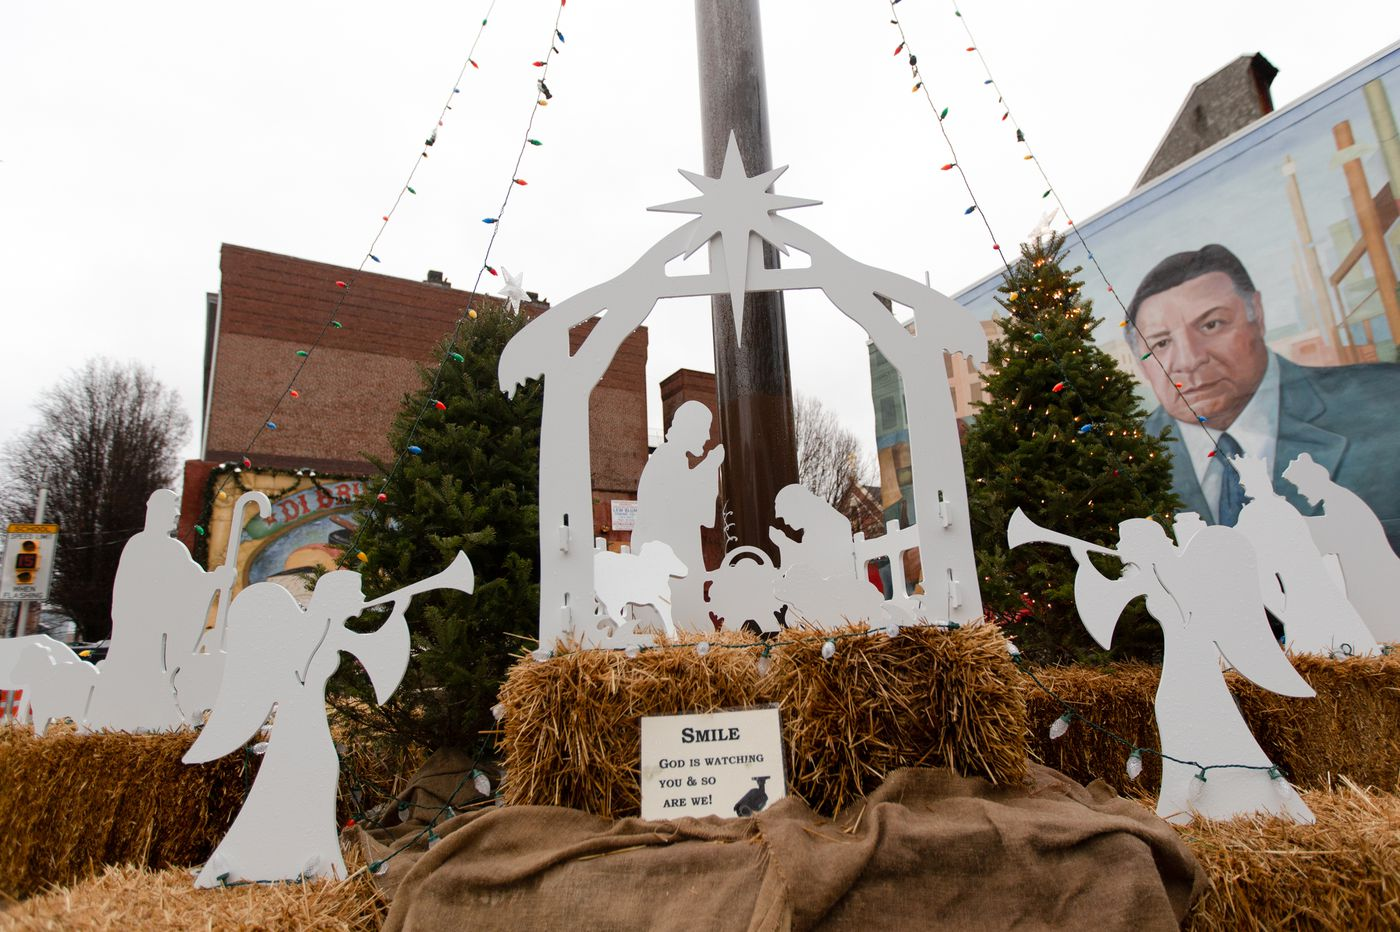 A Christmas caper: In shadow of Rizzo mural, thief pillages South Philly Nativity scene